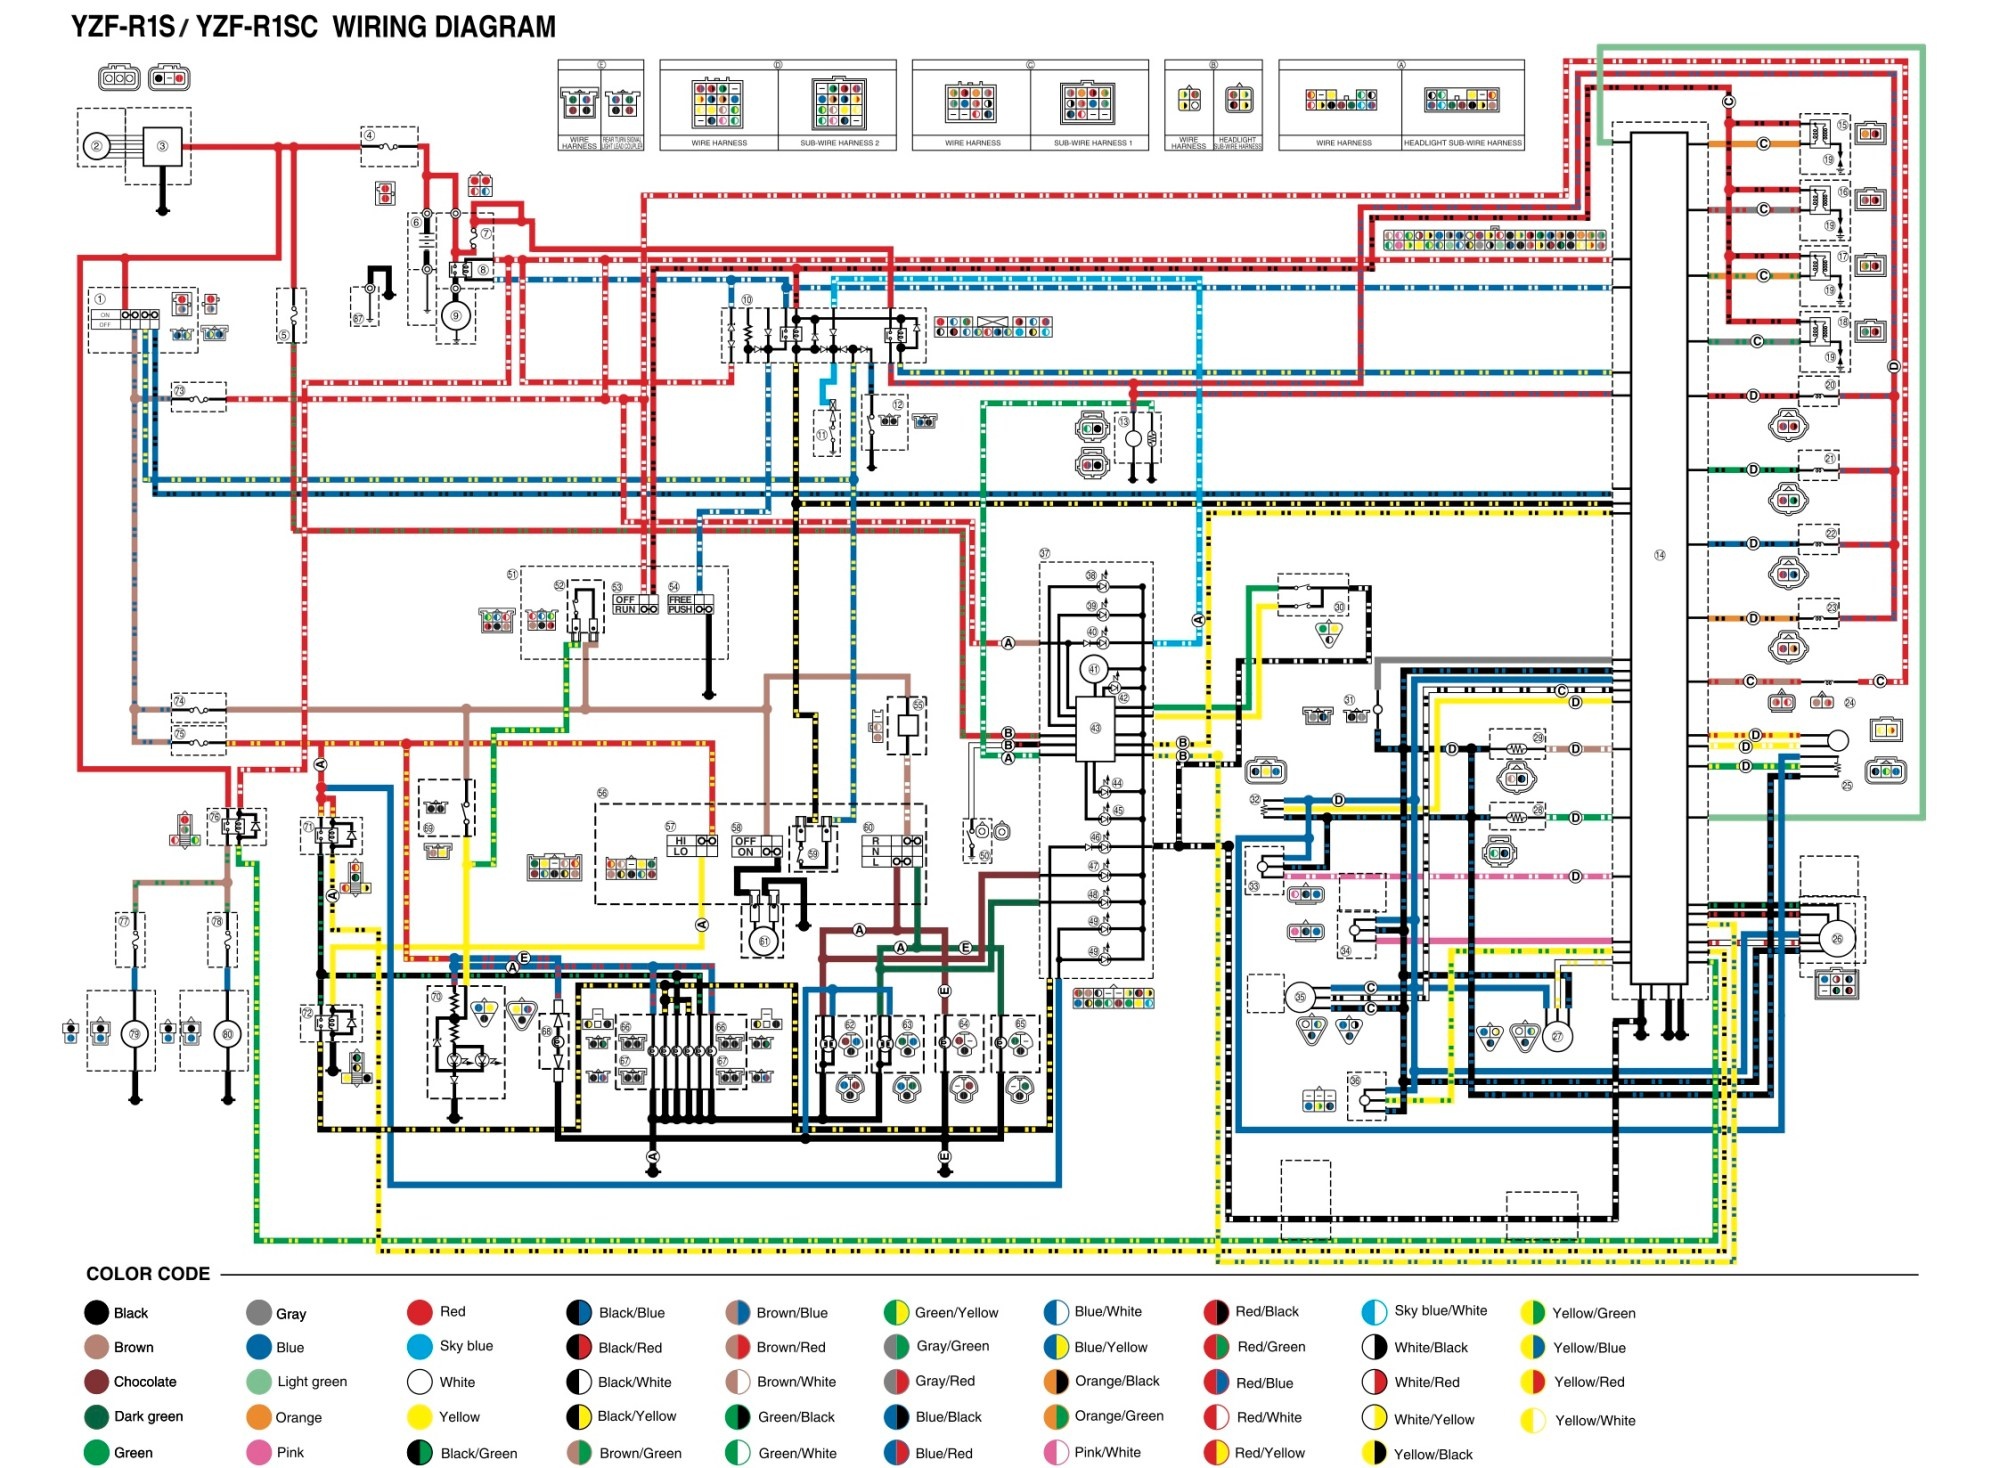 hight resolution of 2004 r6 wiring diagram simple wiring schema wiring diagram honda cbr1000rr 2005 r6 wiring diagram